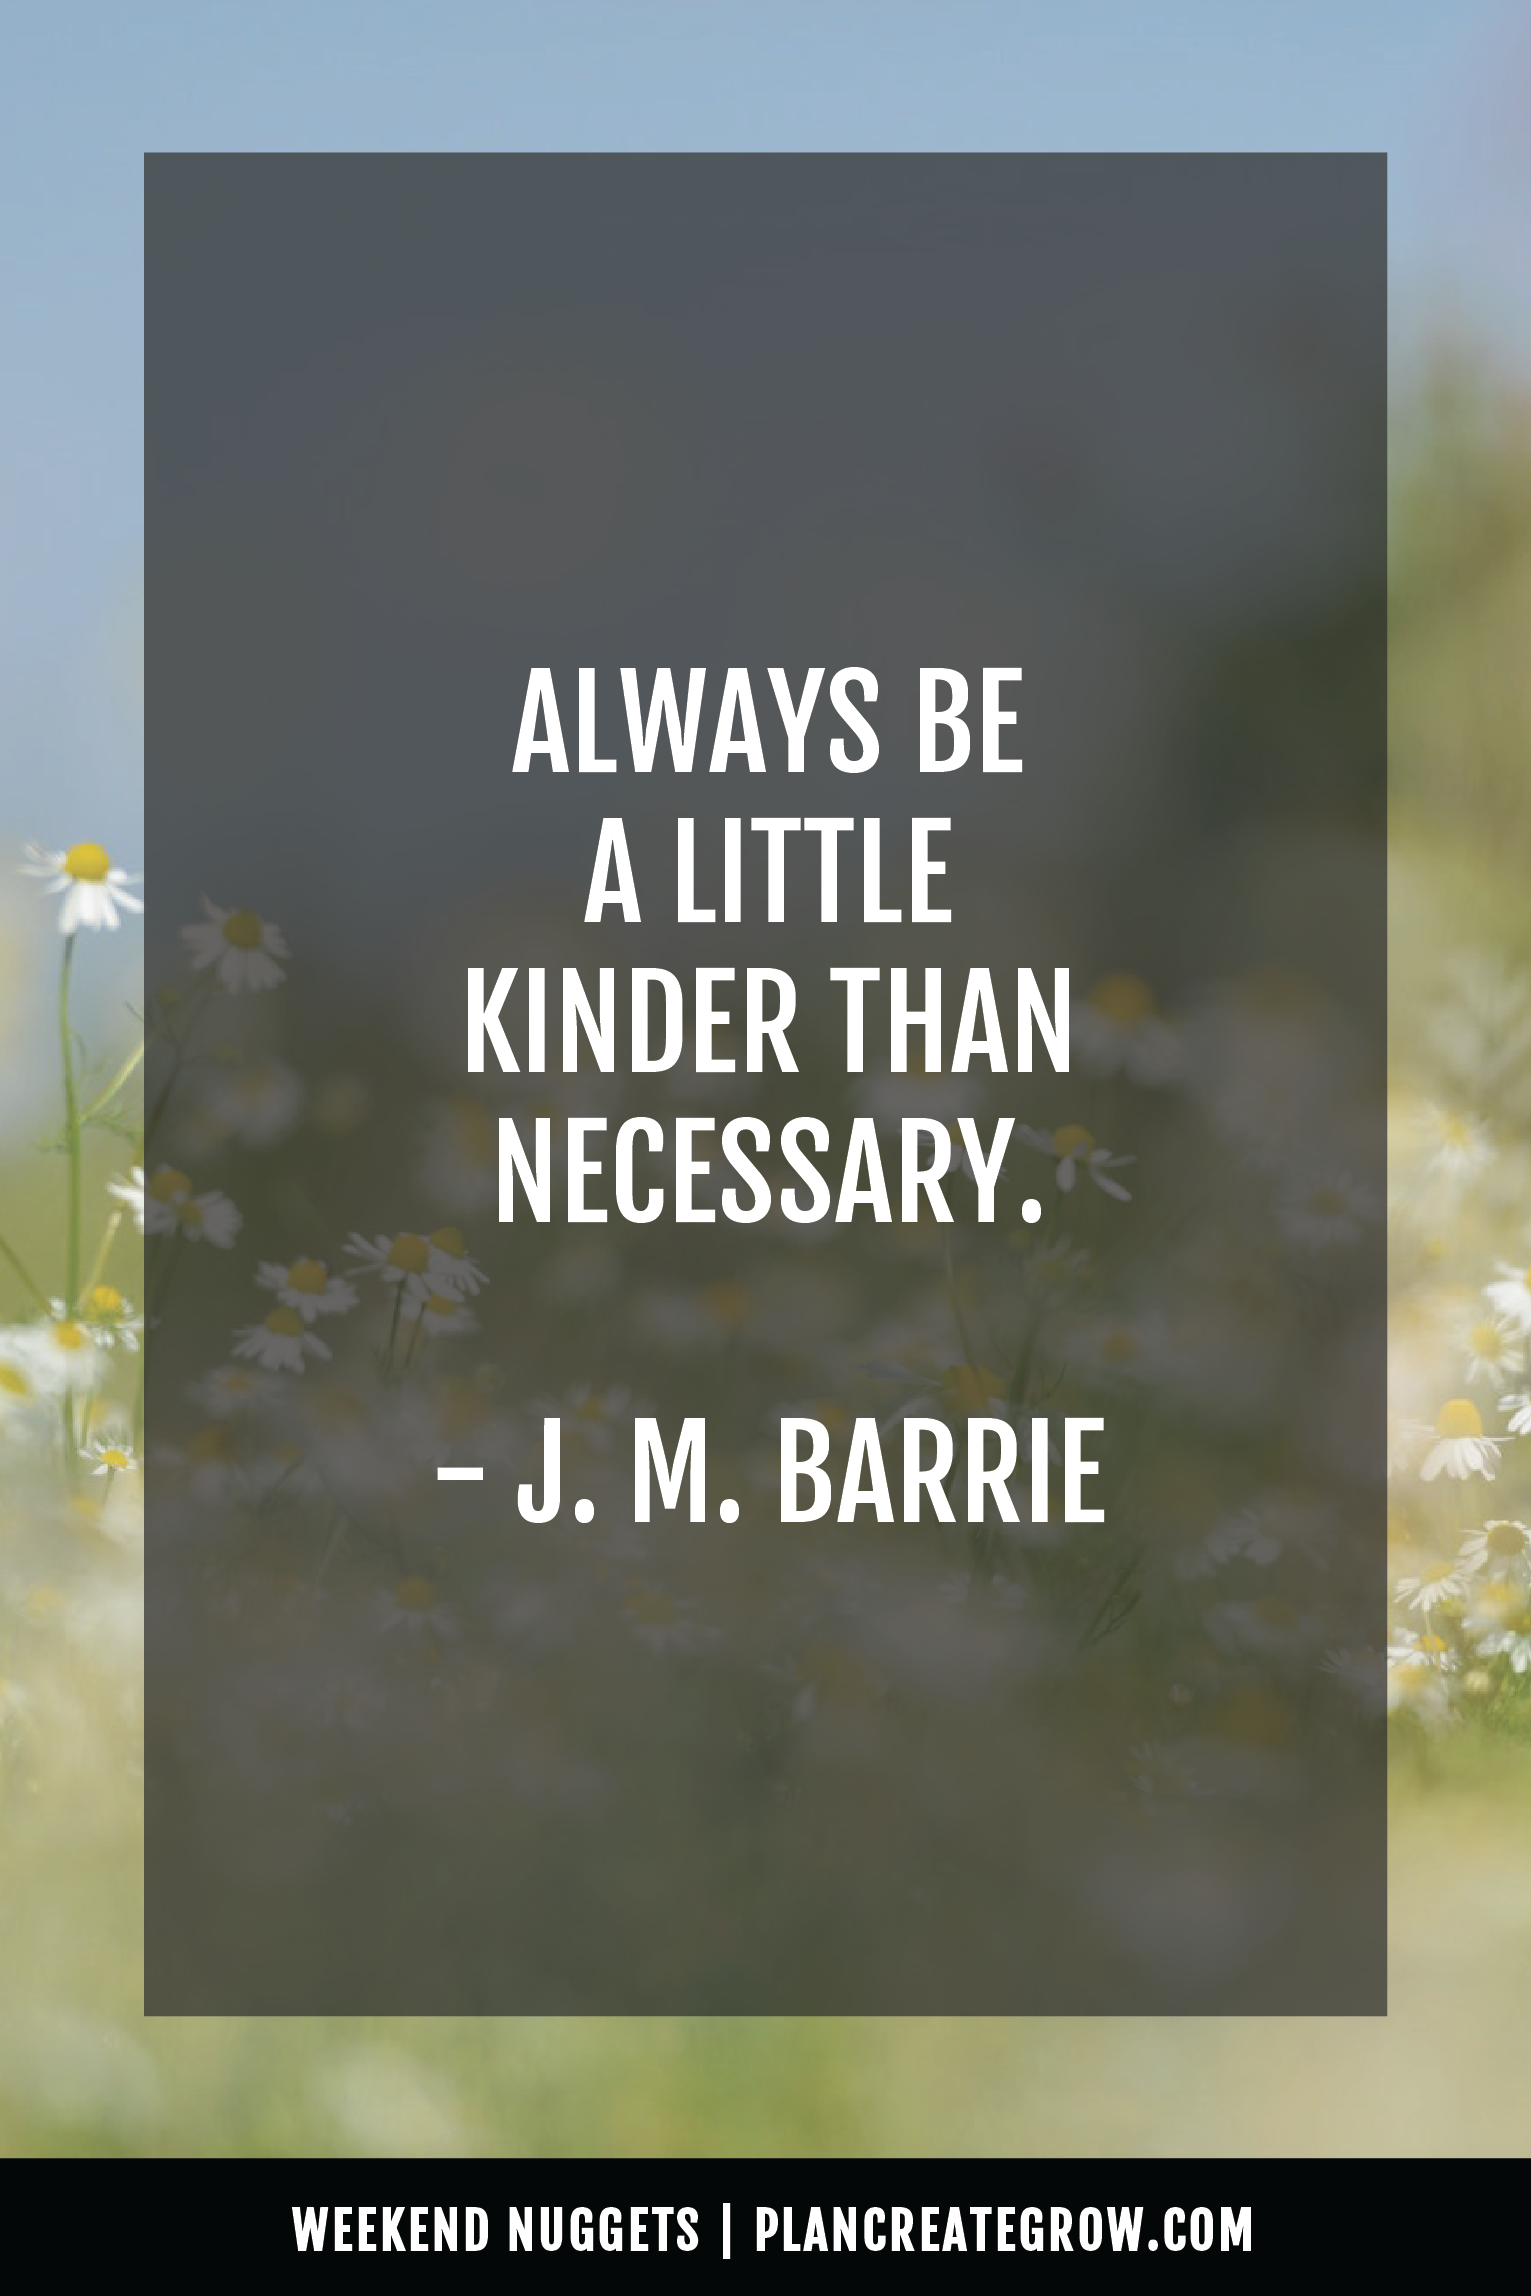 """""""Always be a little kinder than necessary."""" - J. M. Barrie  This image forms part of a series called Weekend Nuggets - a collection of quotes and ideas curated to delight and inspire - shared each weekend. For more, visit plancreategrow.com/weekend-nuggets."""